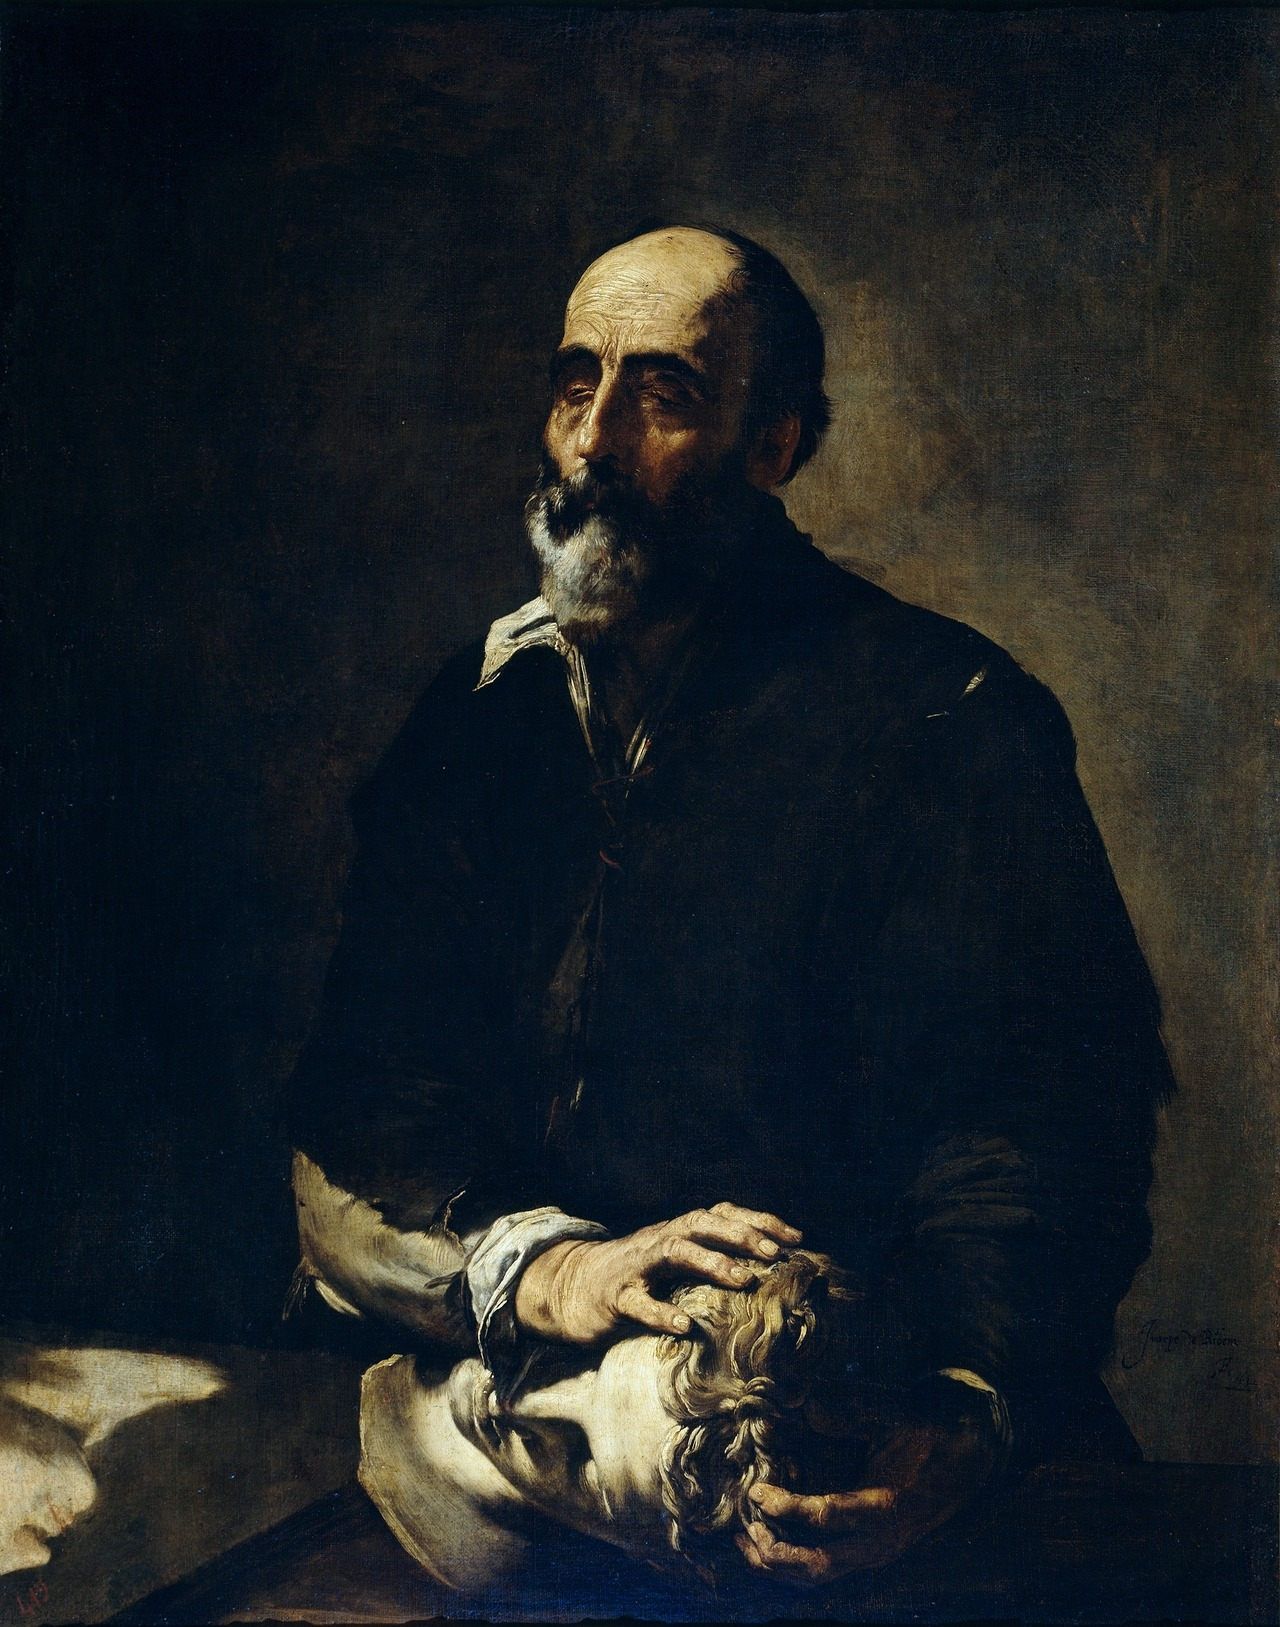 Jusepe de Ribera The Blind Sculptor · Allegory of Touch (1632)  In this portrait, the figure is shown caressing the head of a classical sculpture, probably of Apollo. The most widely-accepted interpretation of this is that it represents the sense of touch, as this Valencian artist frequently painted series of works on the five senses. During the eighteenth century, it was considered a portrait of the blind sculptor Giovanni Gonnelli, but this theory can be rejected because that artist was not even thirty when this painting was made. It was also thought to be a representation of the philosopher Carneades who, after losing his sight, was still able to recognize a bust of the god Pan by touch. It is probably a representation of the sense of touch, using the story of Carneades as its narrative vehicle. This was a very successful procedure during that period, when portraits of ancient philosophers were associated with allegories of the senses. (via Museo del Prado)